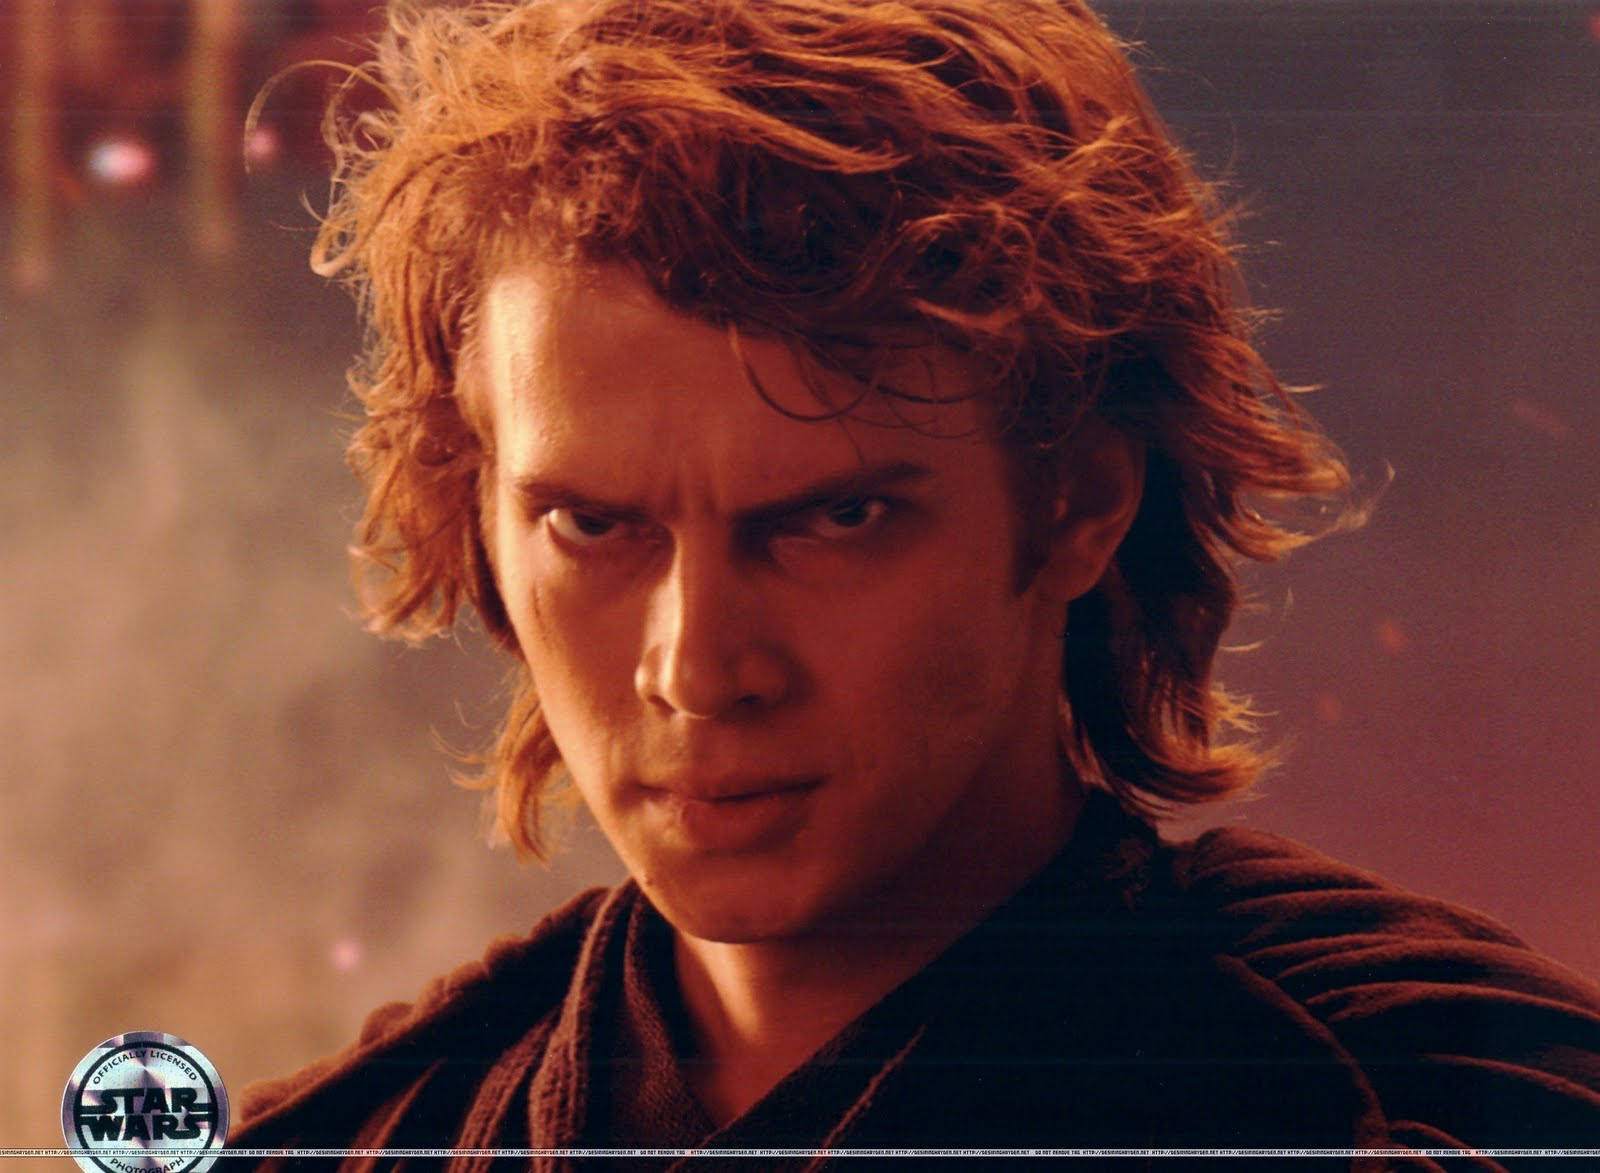 Star Wars episode 3 anakin skywalker wallpaper Picture Wallpaper 1600x1173